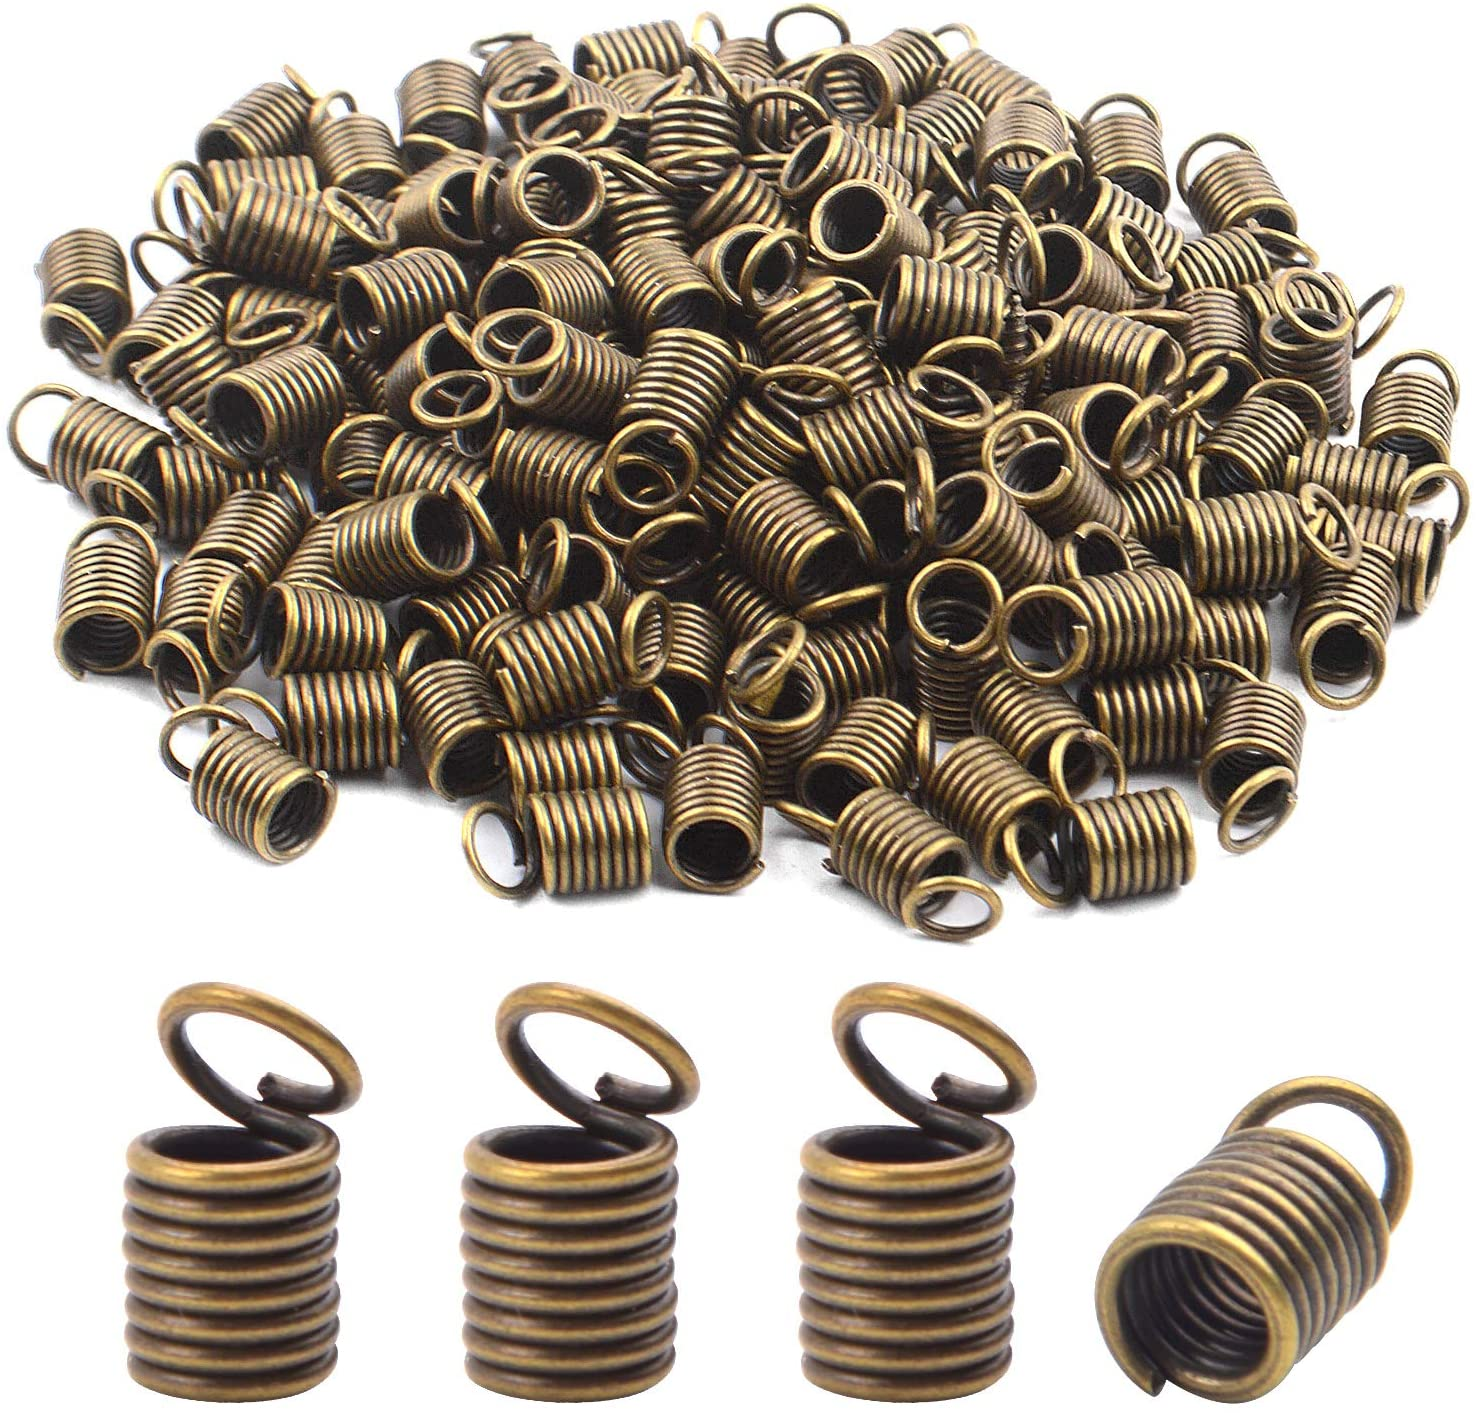 BronaGrand 150pcs Antiqued Brass Bronze Crimp Fasteners Leather Cord Ends Caps Necklace Clasp Jewelry Parts 10x5mm